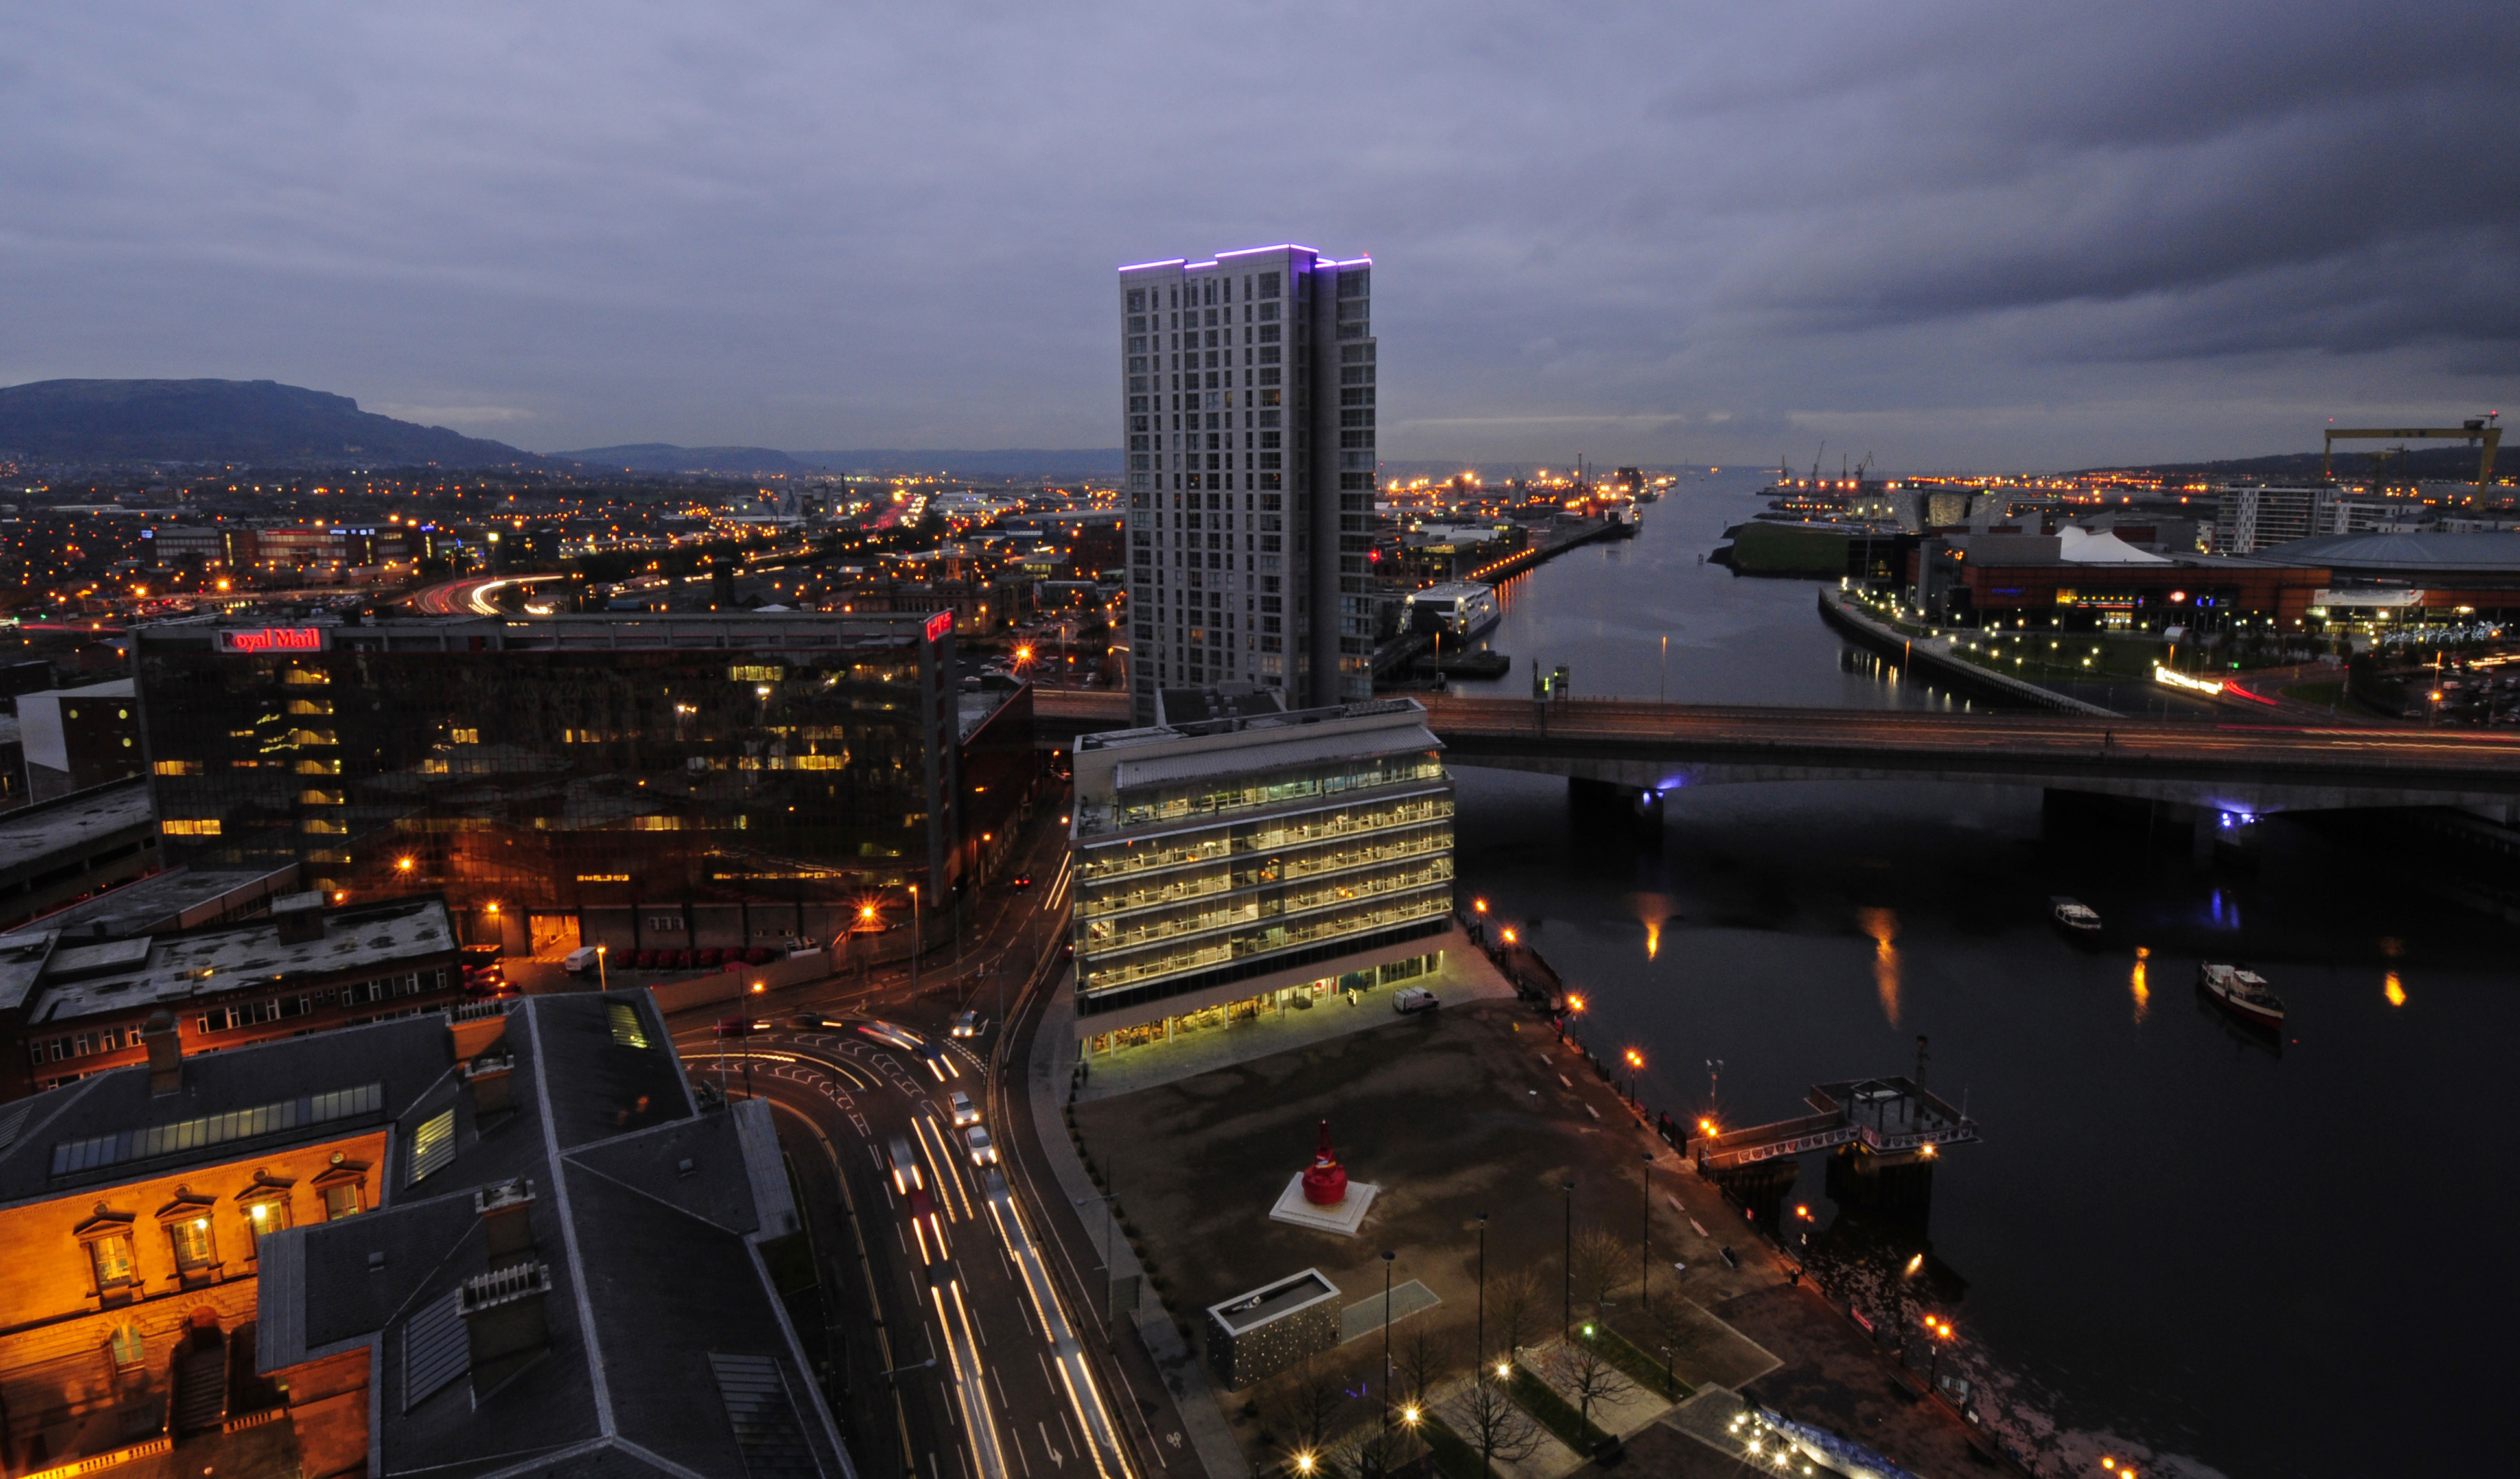 The Obel Tower